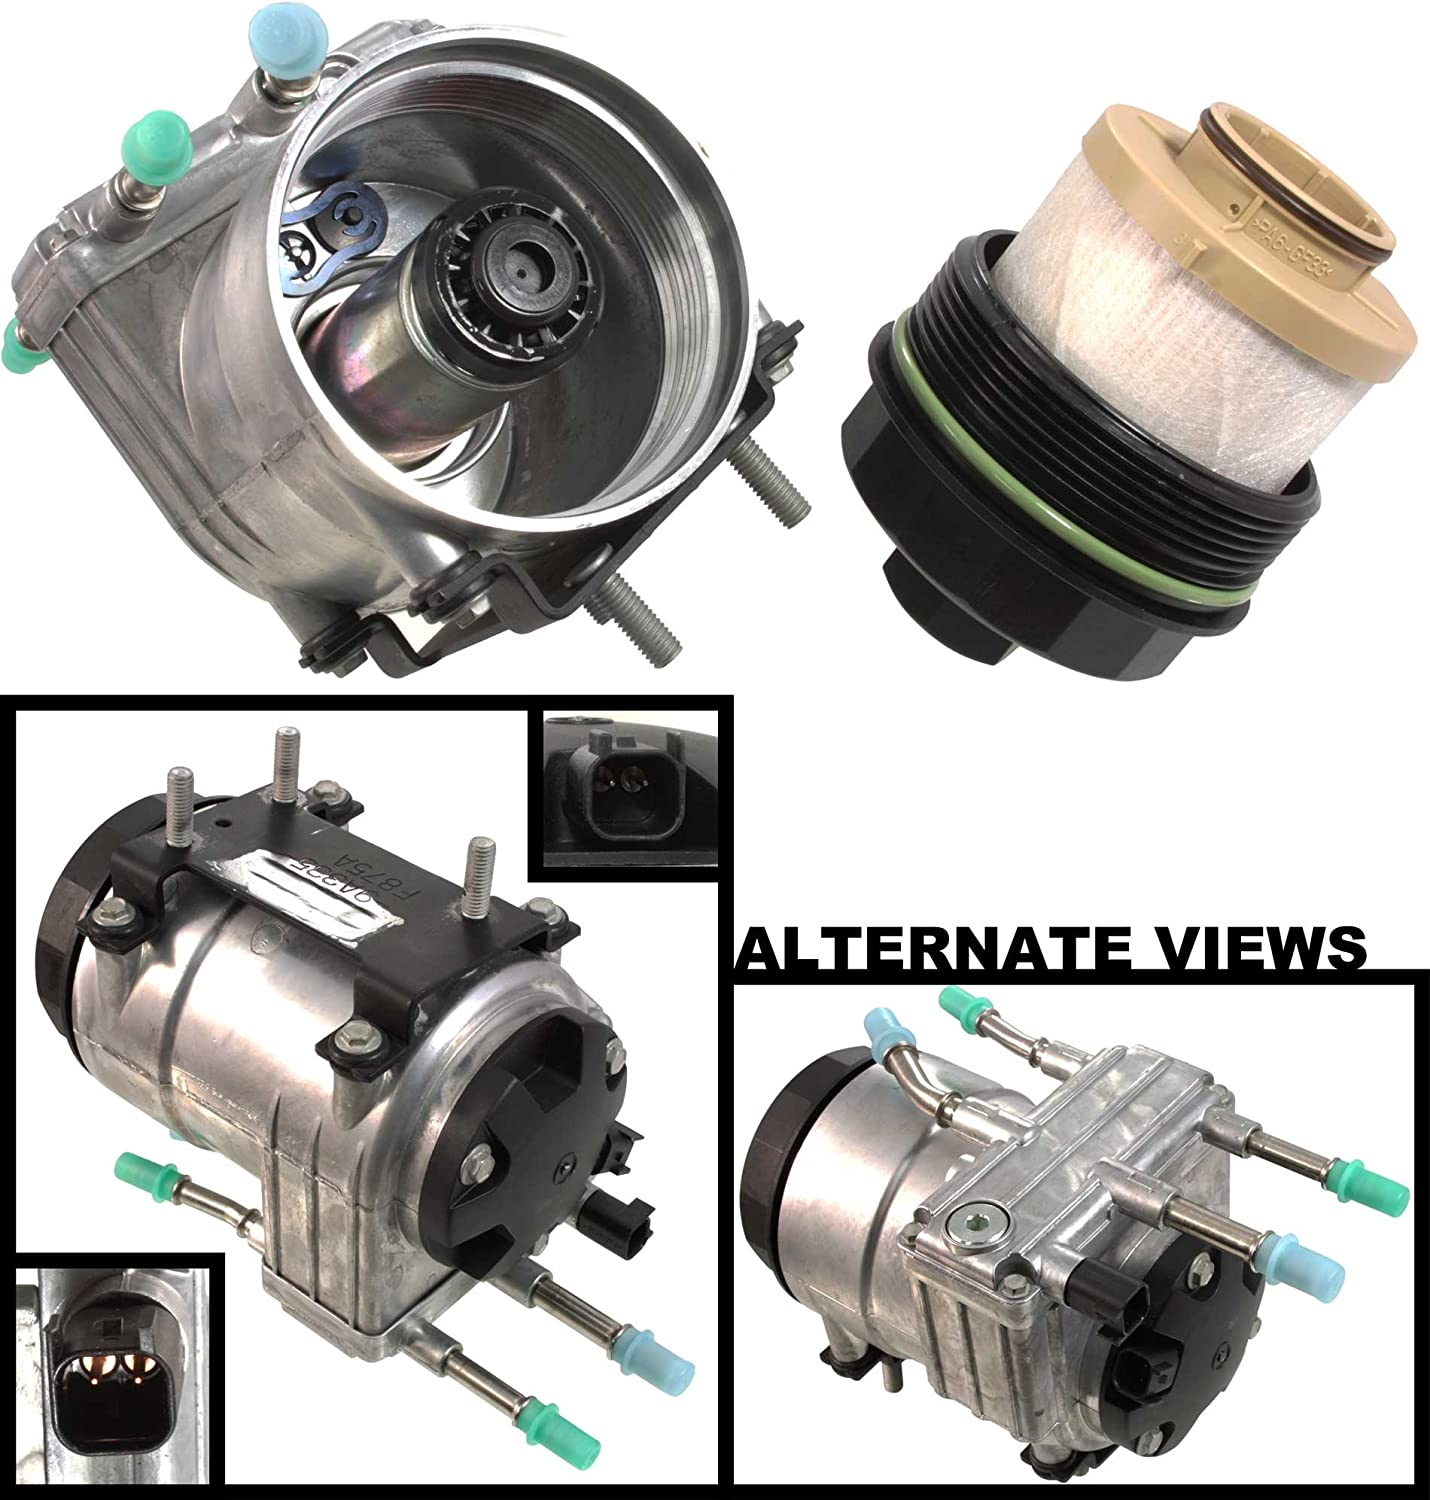 Amazon.com: APDTY 112774 Fuel Filter Conditioning Complete Housing Module  (Horizontal Frame Mounted) Fits 2003-2007 Ford 6.0L Diesel Trucks (Replaces  Ford 6C3Z-9G282-C, 6C3Z9G282C, PFB101): Automotive | Ford F 350 Fuel Filter |  | Amazon.com